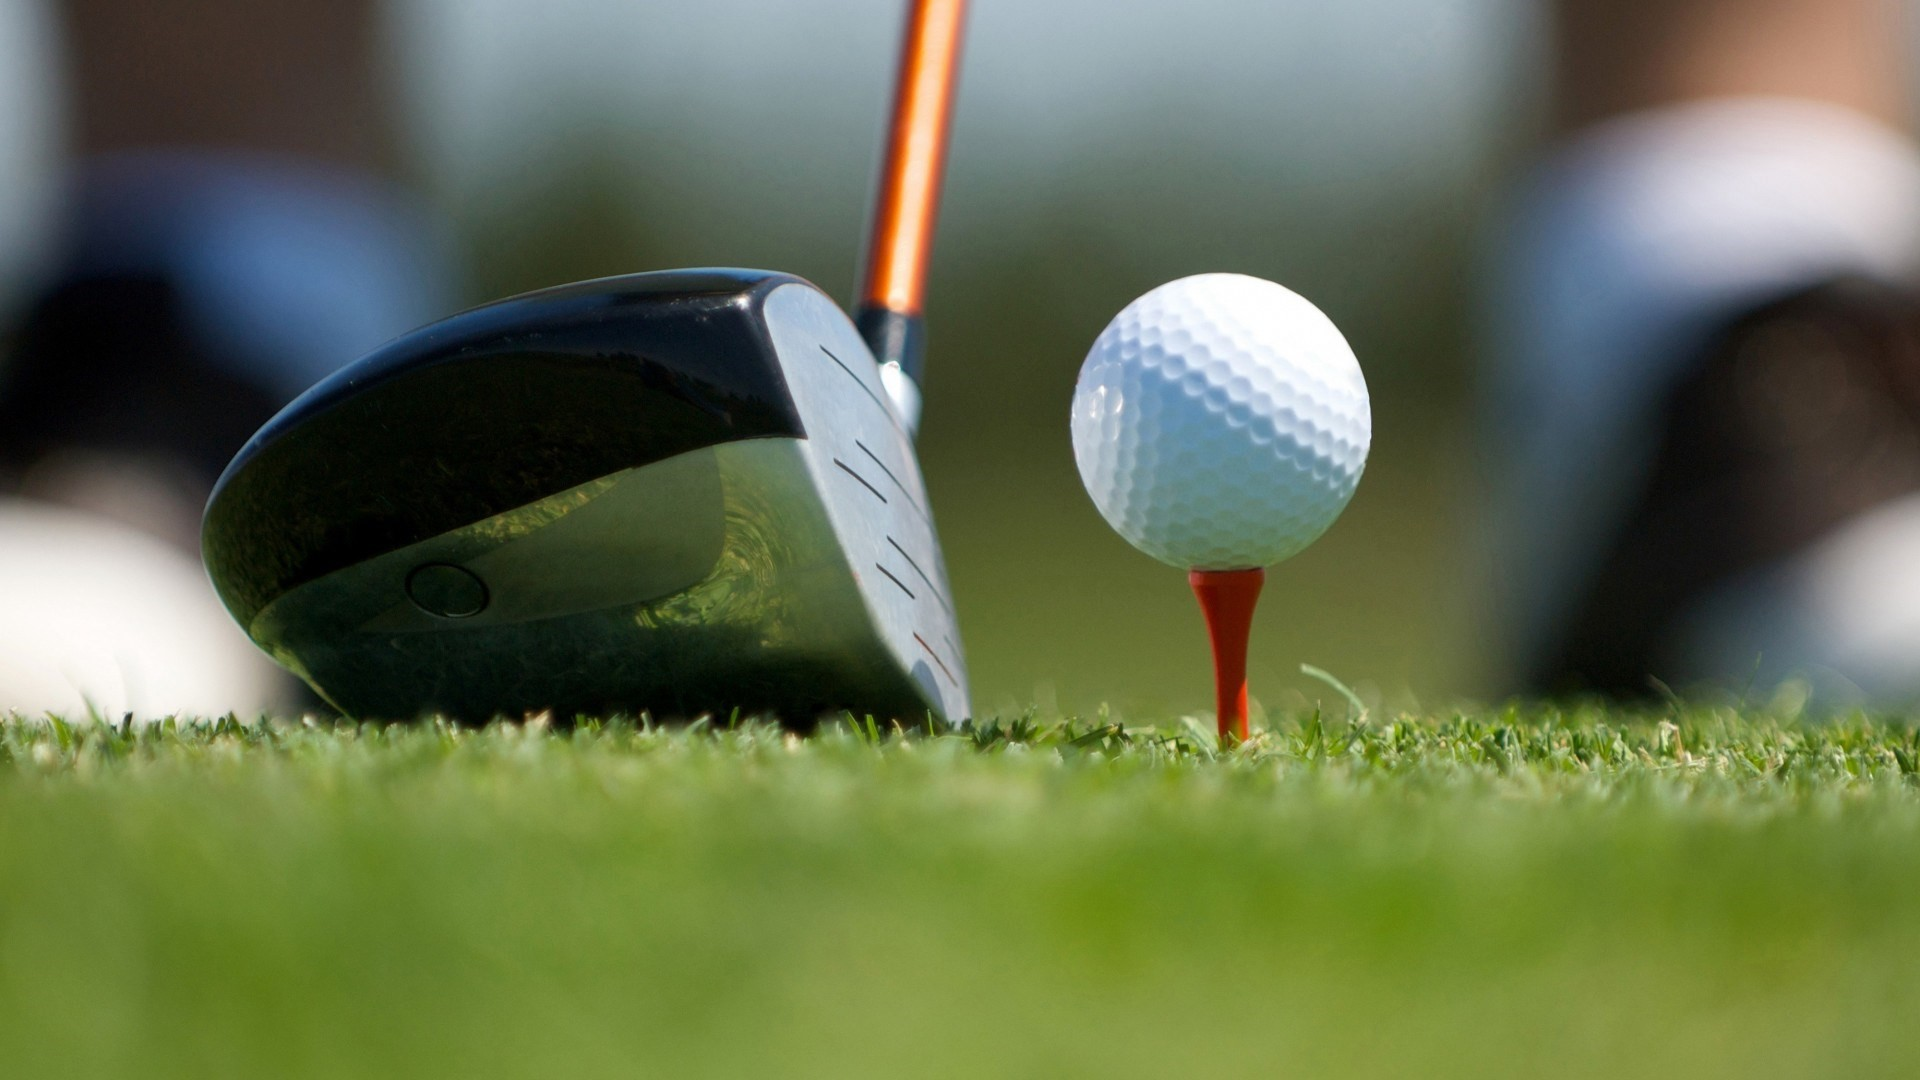 Res: 1920x1080, Golf Wallpapers – Golf Full HD Quality Wallpapers for PC & Mac, Tablet,  Laptop, Mobile